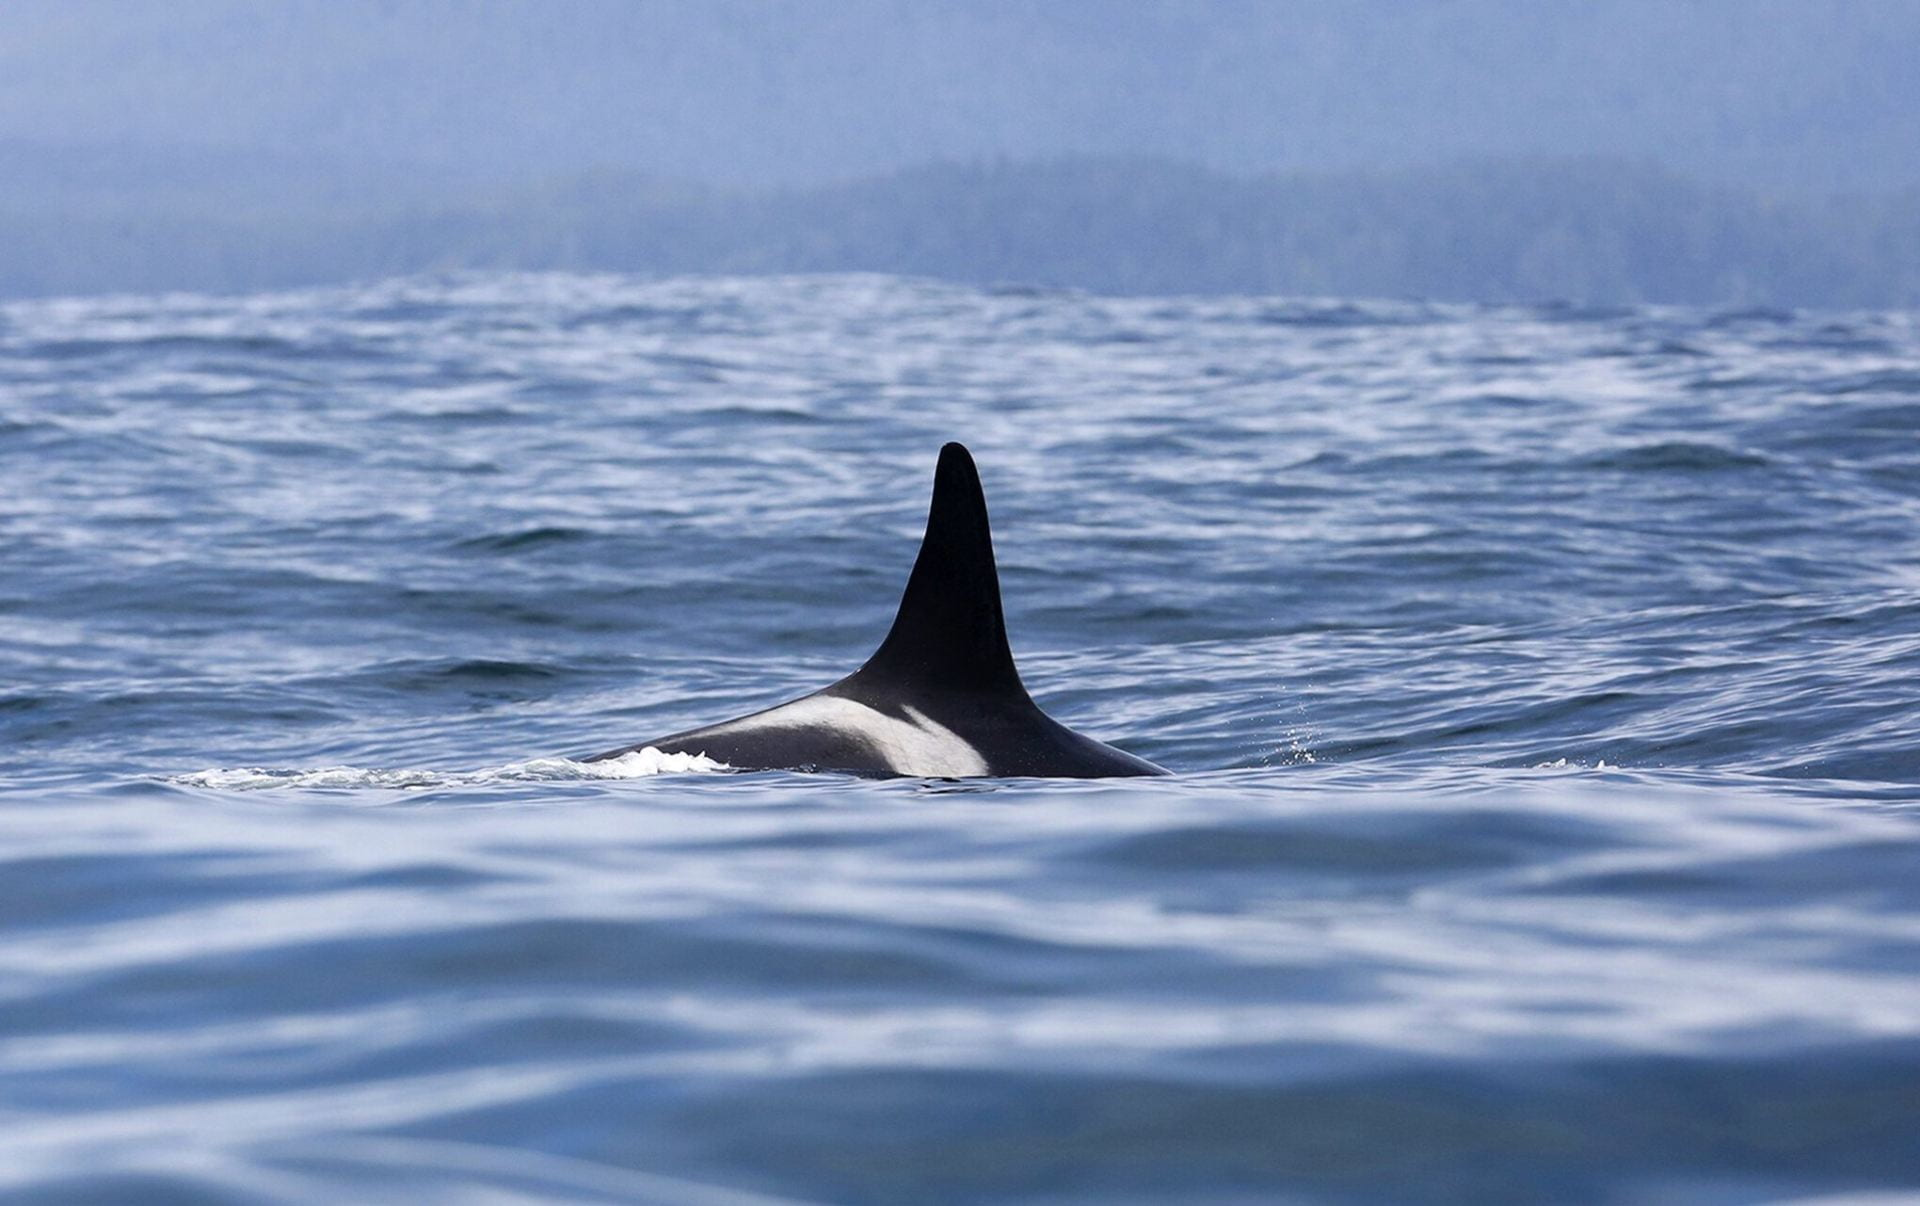 Record heat, drought threaten even the toughest survivors: L25, the oldest orca, and the winter Chinook she depends on